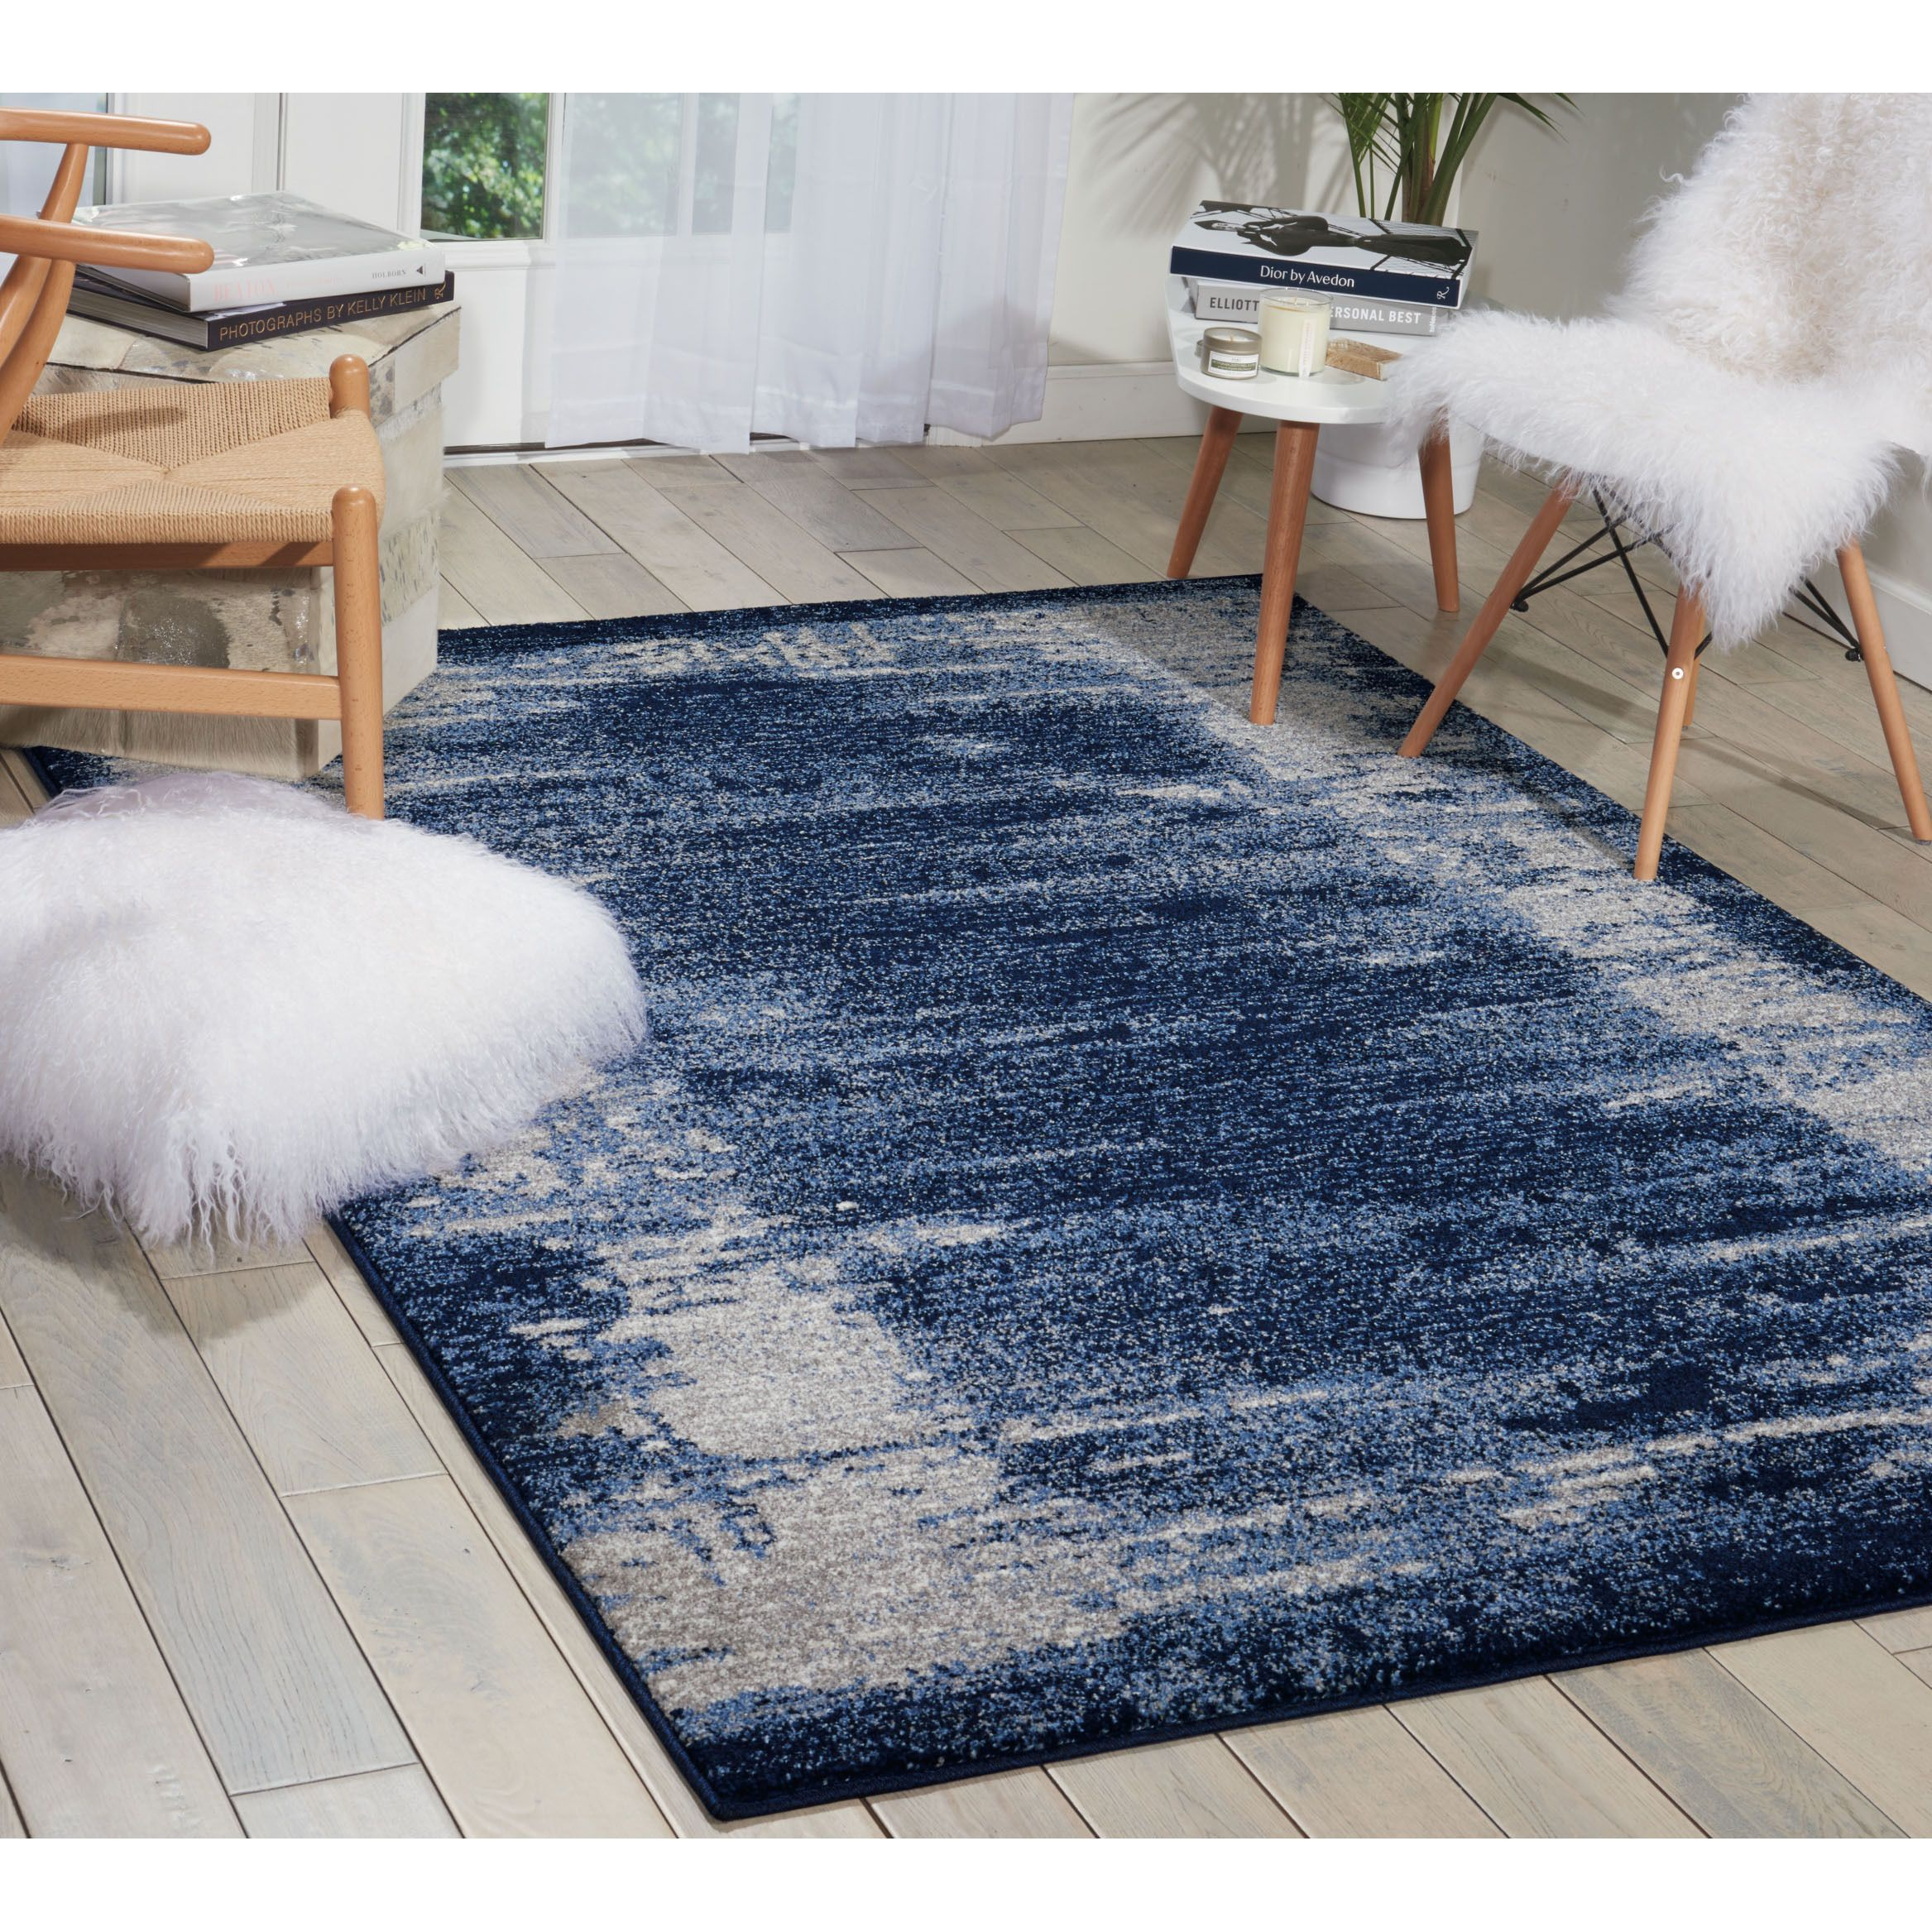 Overstock Com Online Shopping Bedding Furniture Electronics Jewelry Clothing More In 2020 Blue Gray Area Rug Blue Area Rugs Area Rug Sizes